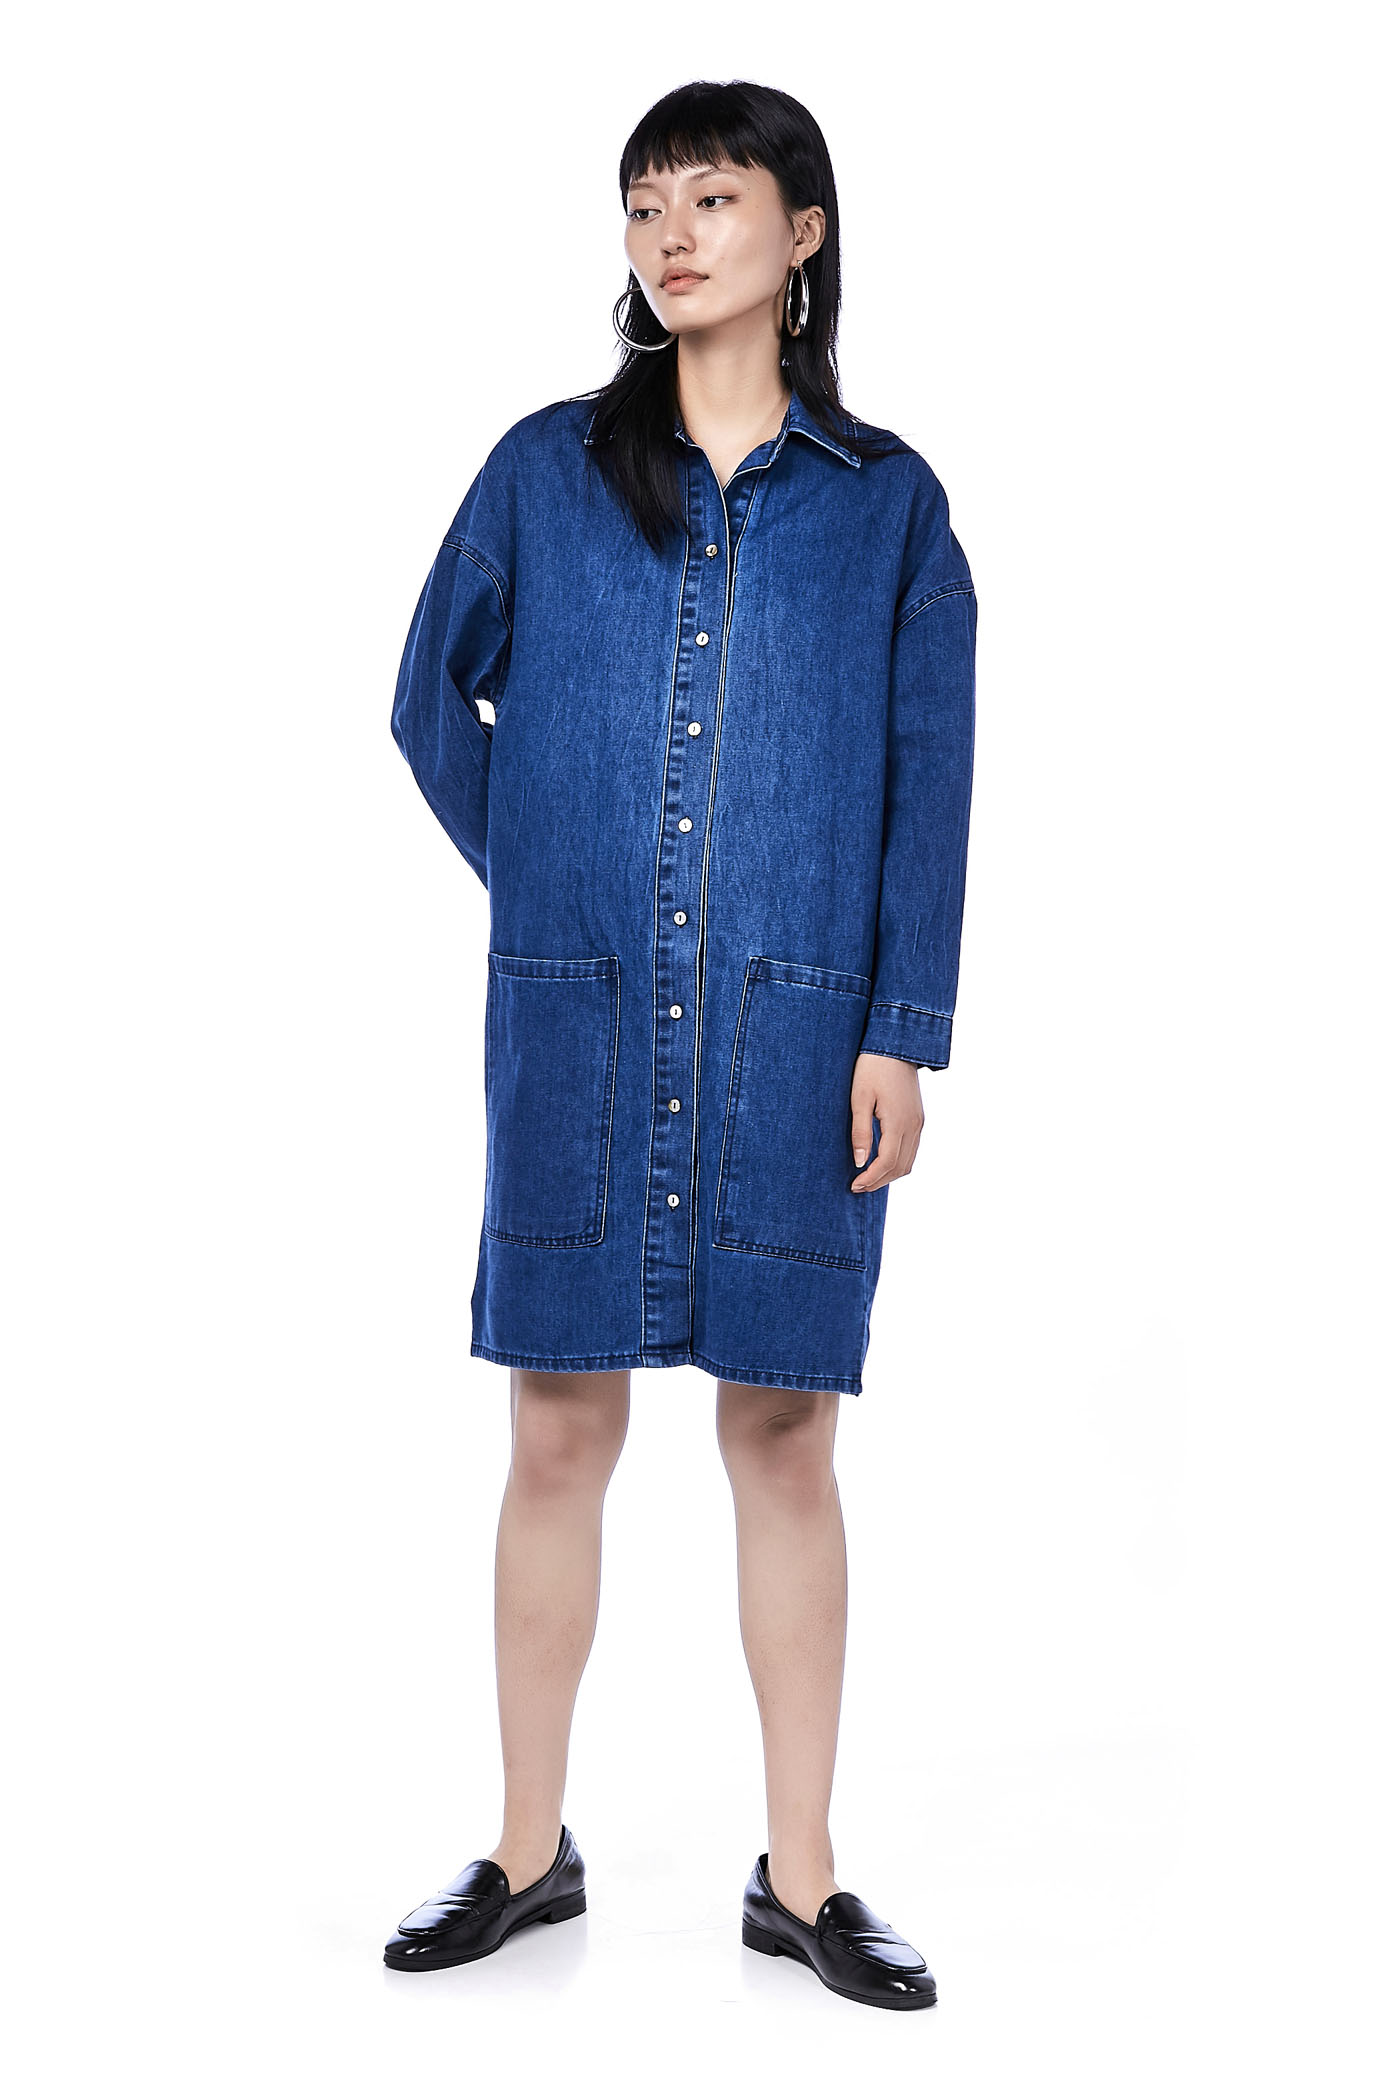 Delvy Denim Shirtdress